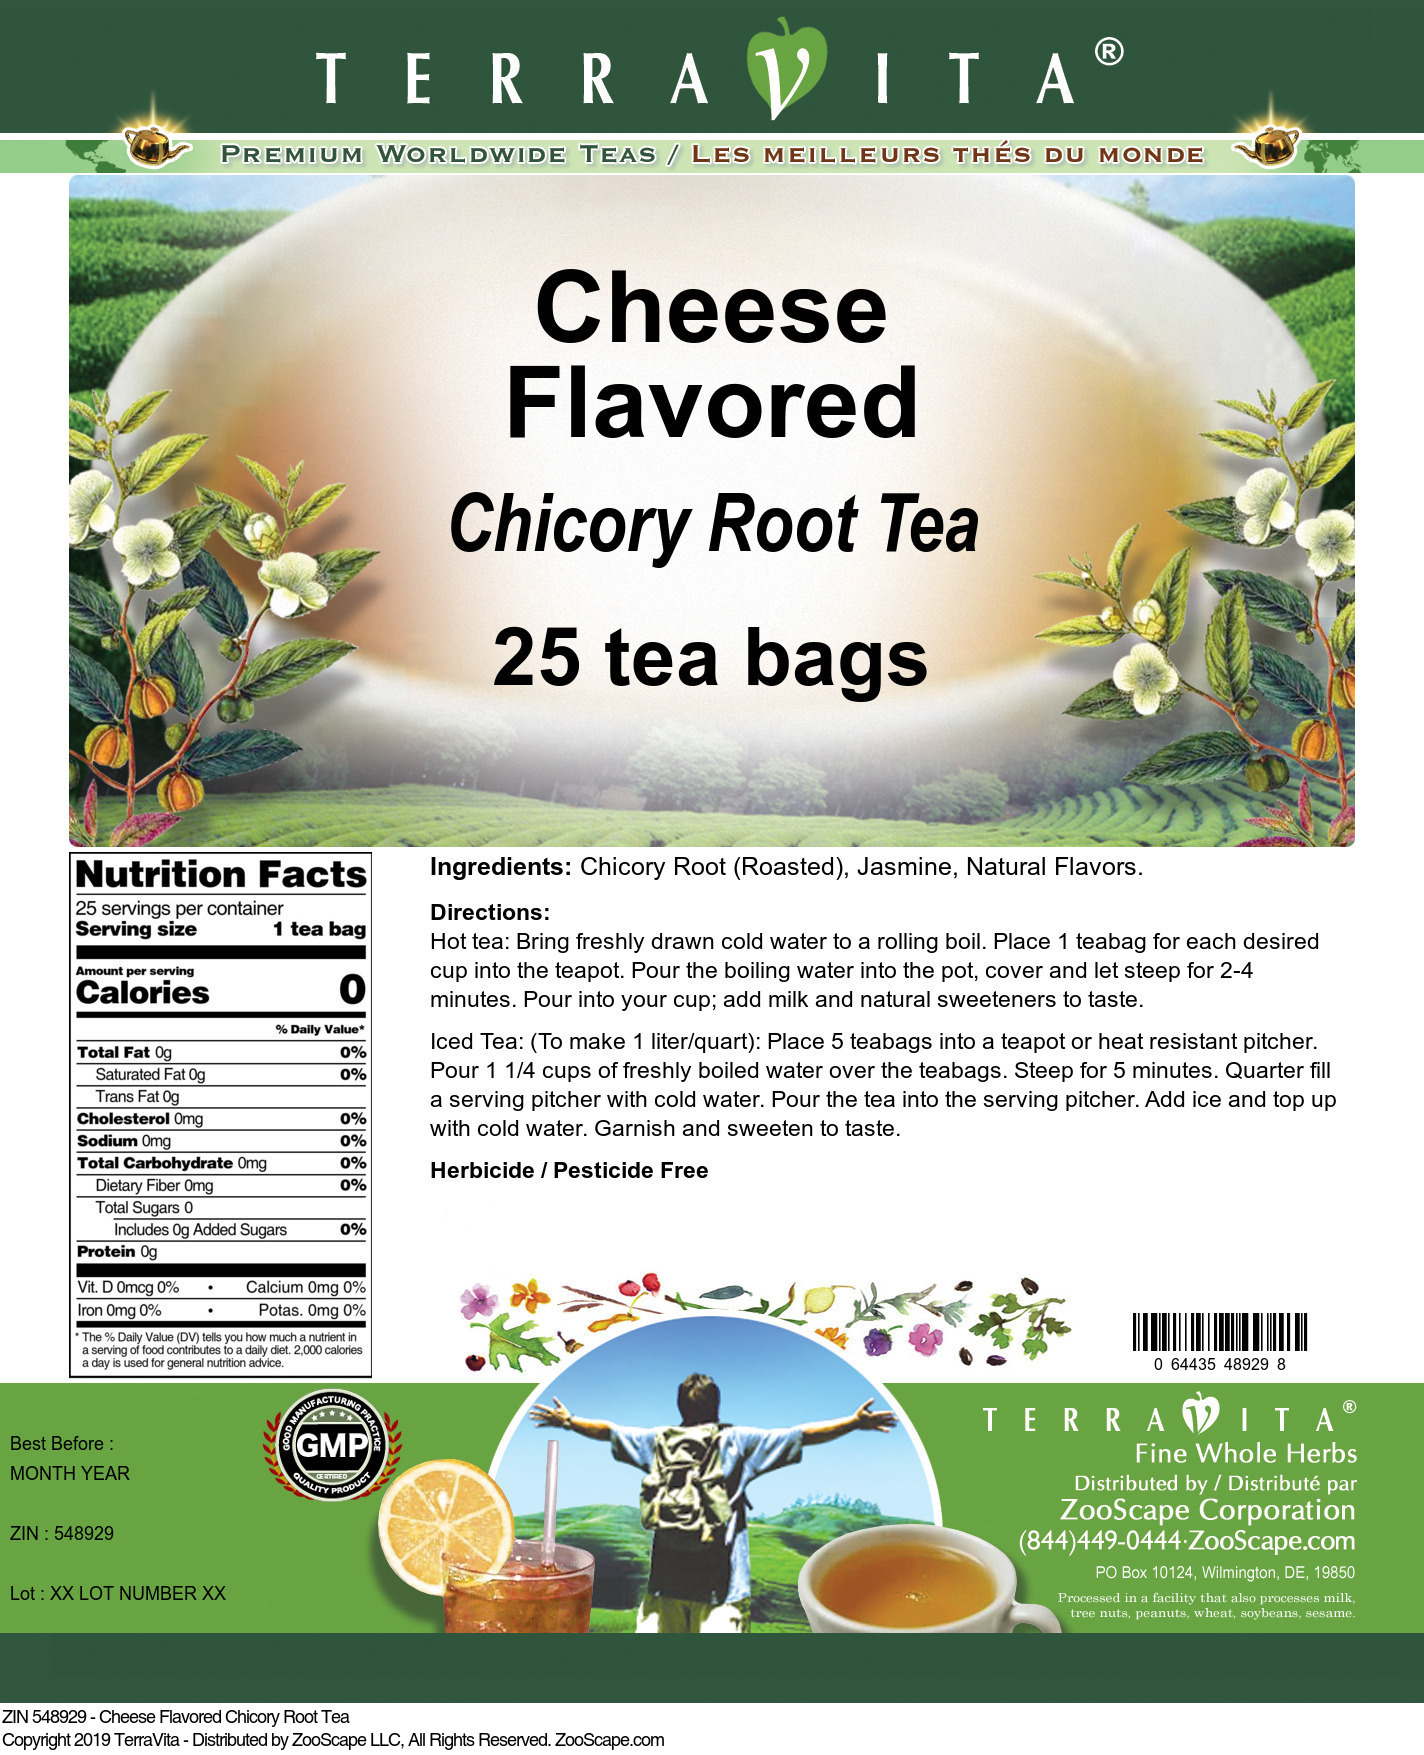 Cheese Flavored Chicory Root Tea